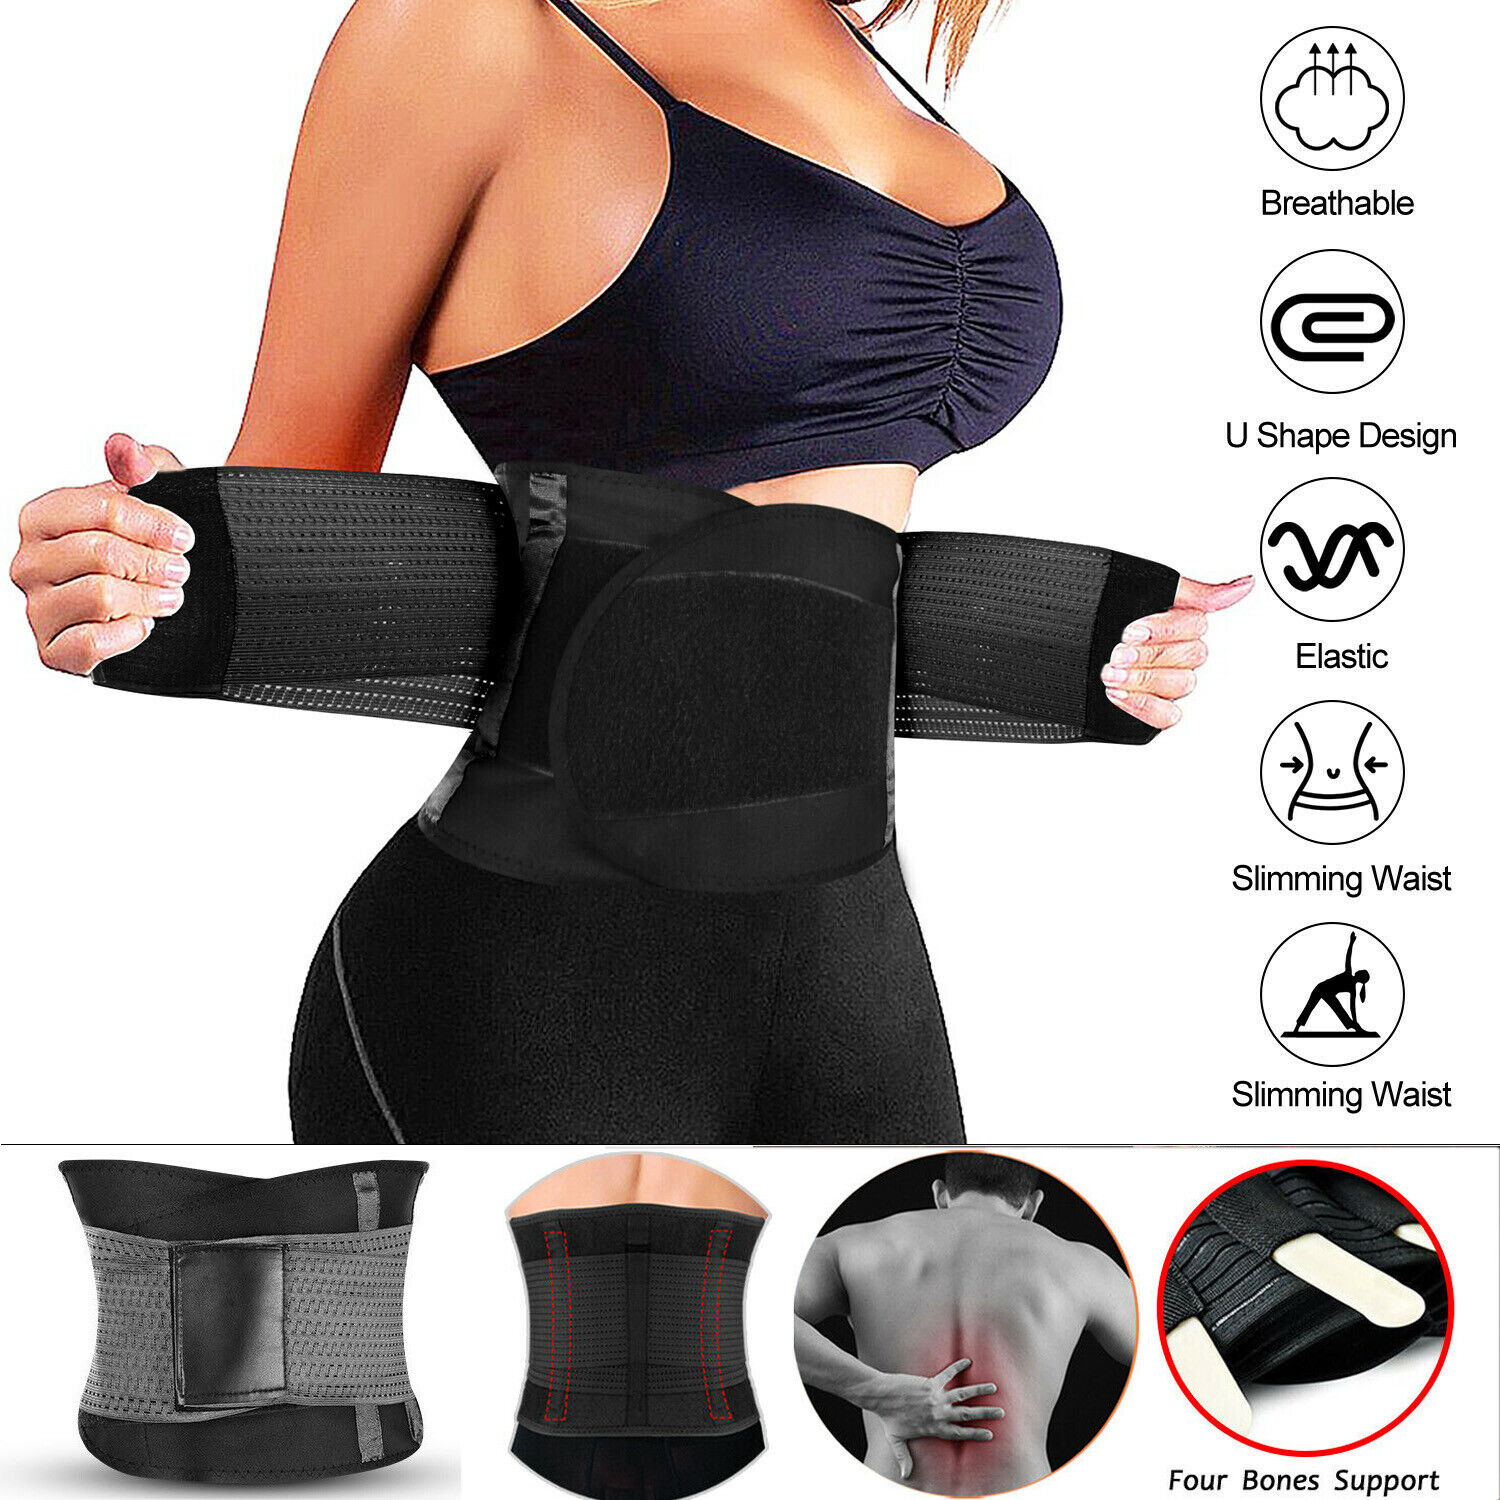 Corset Waist Trainer Shaper Body Control Shapewear Weight Loss Tummy Belt Women Clothing, Shoes & Accessories